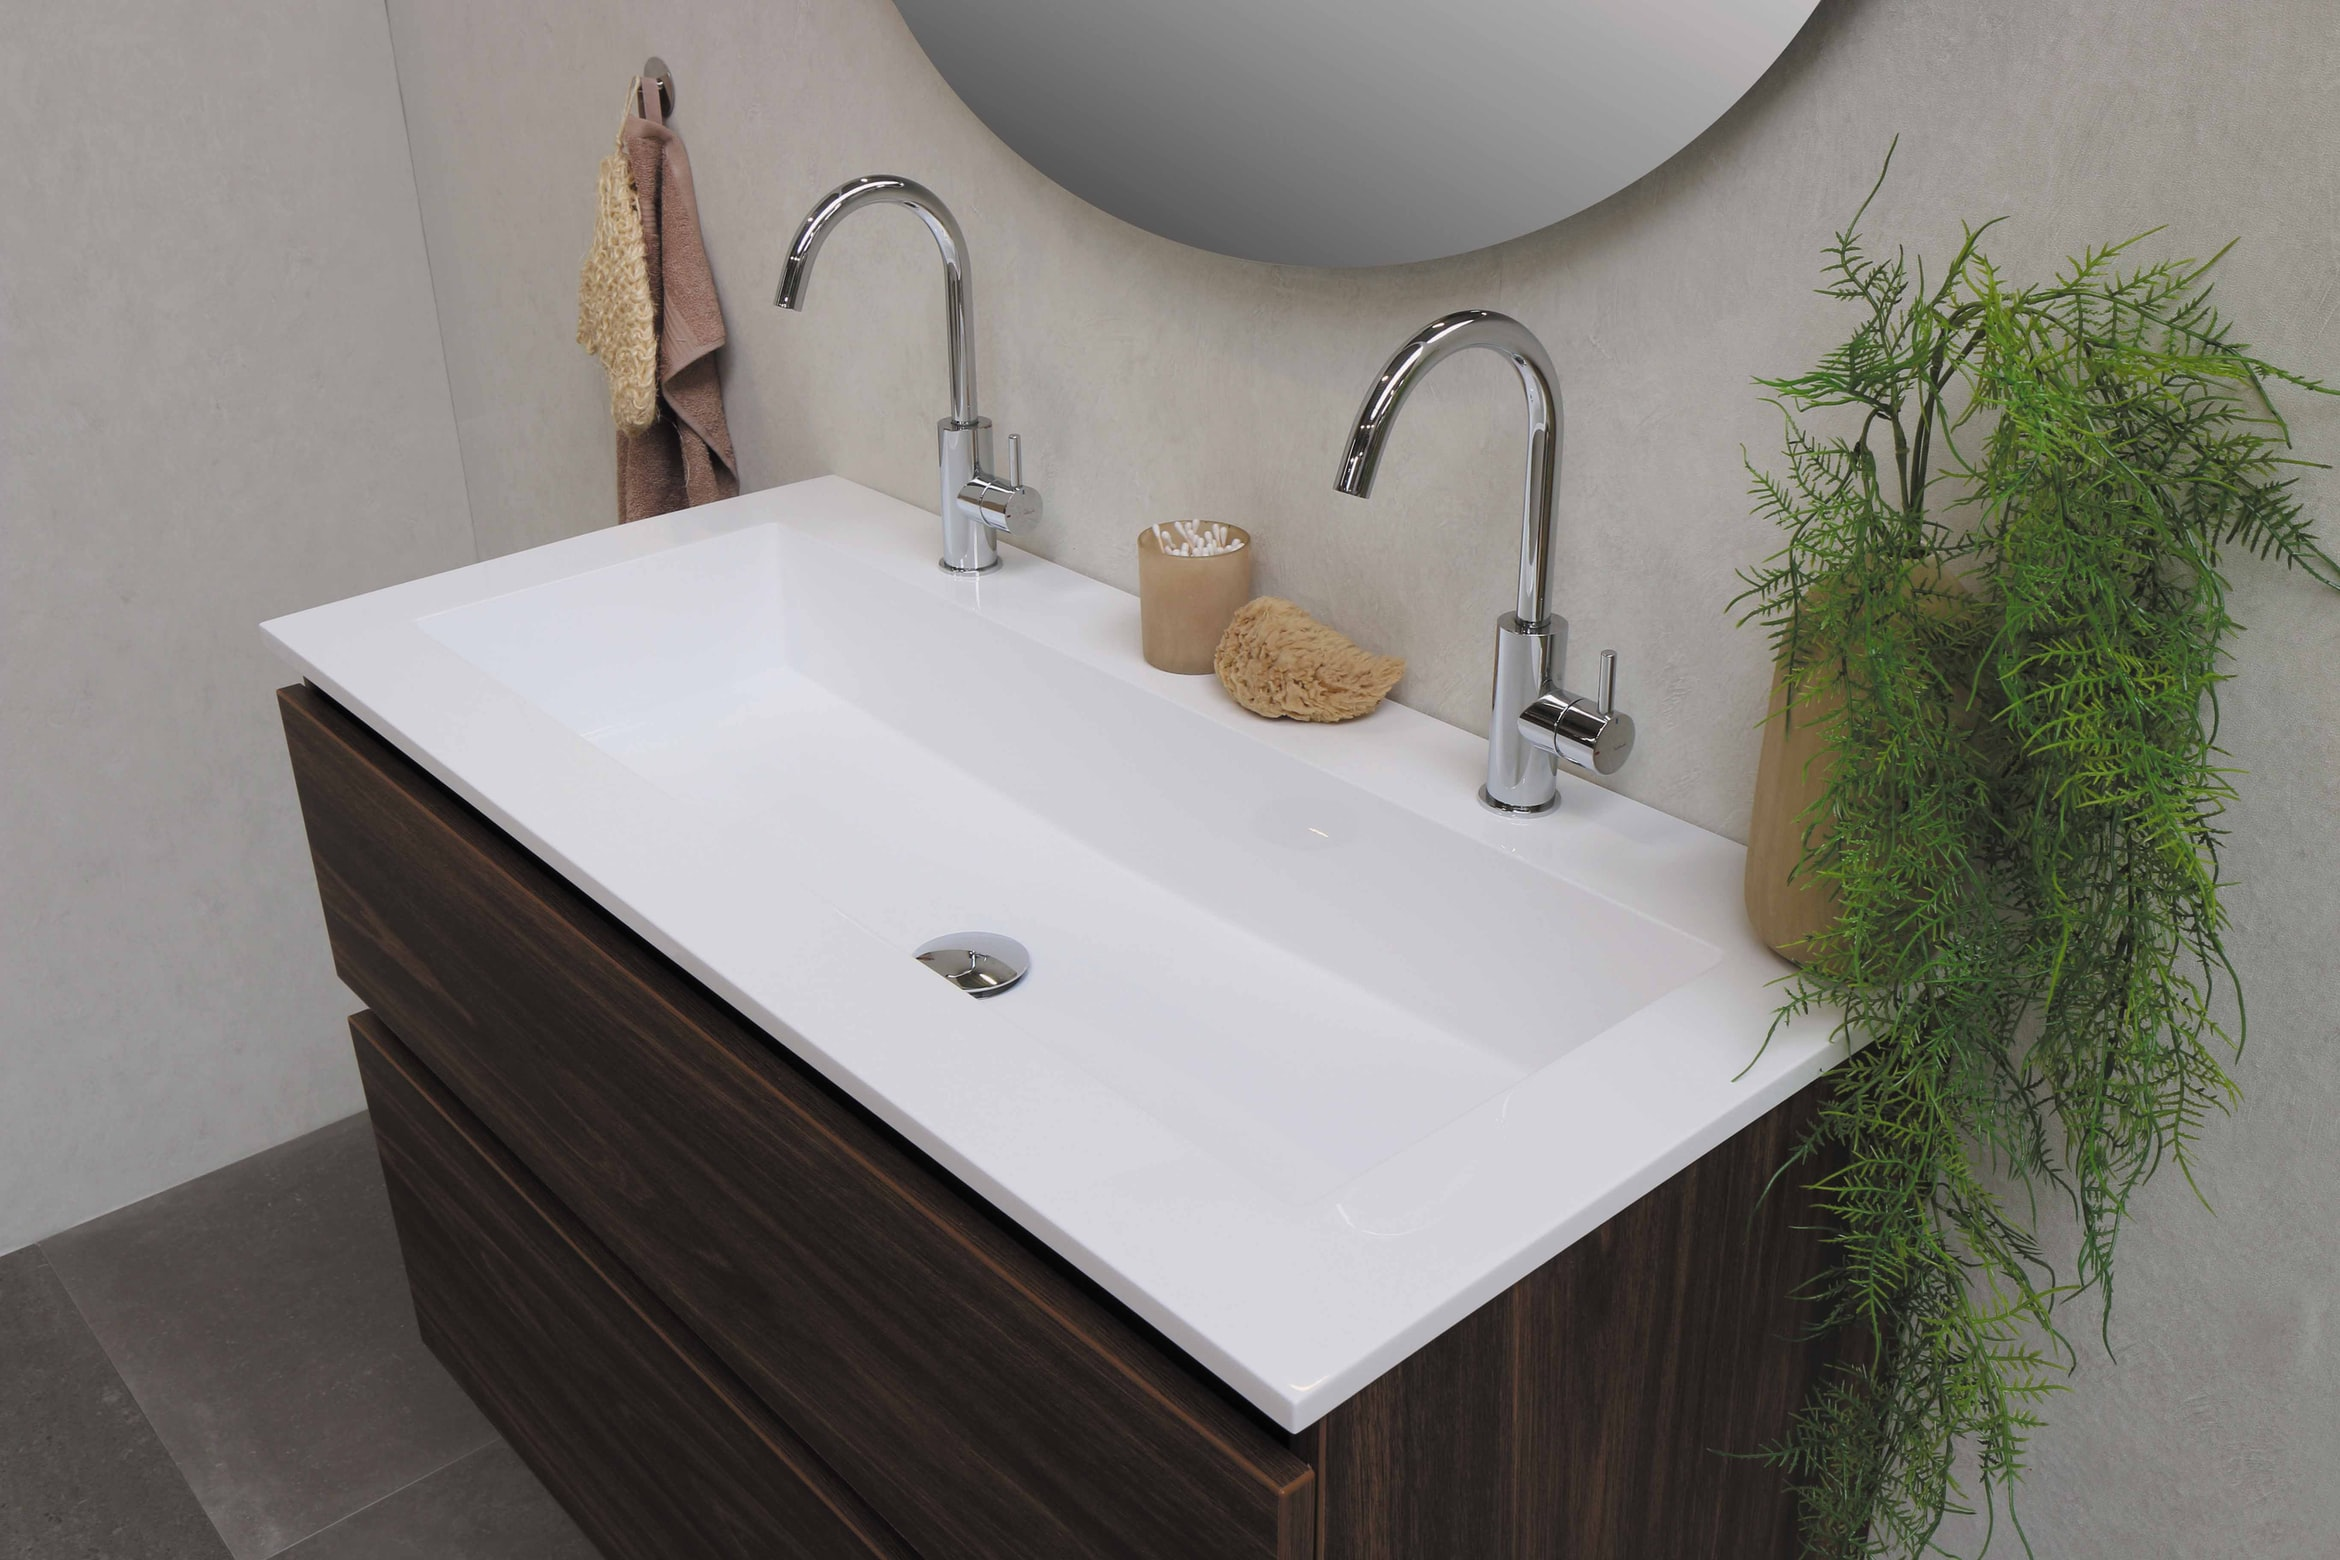 Why Are Faucets So Expensive?